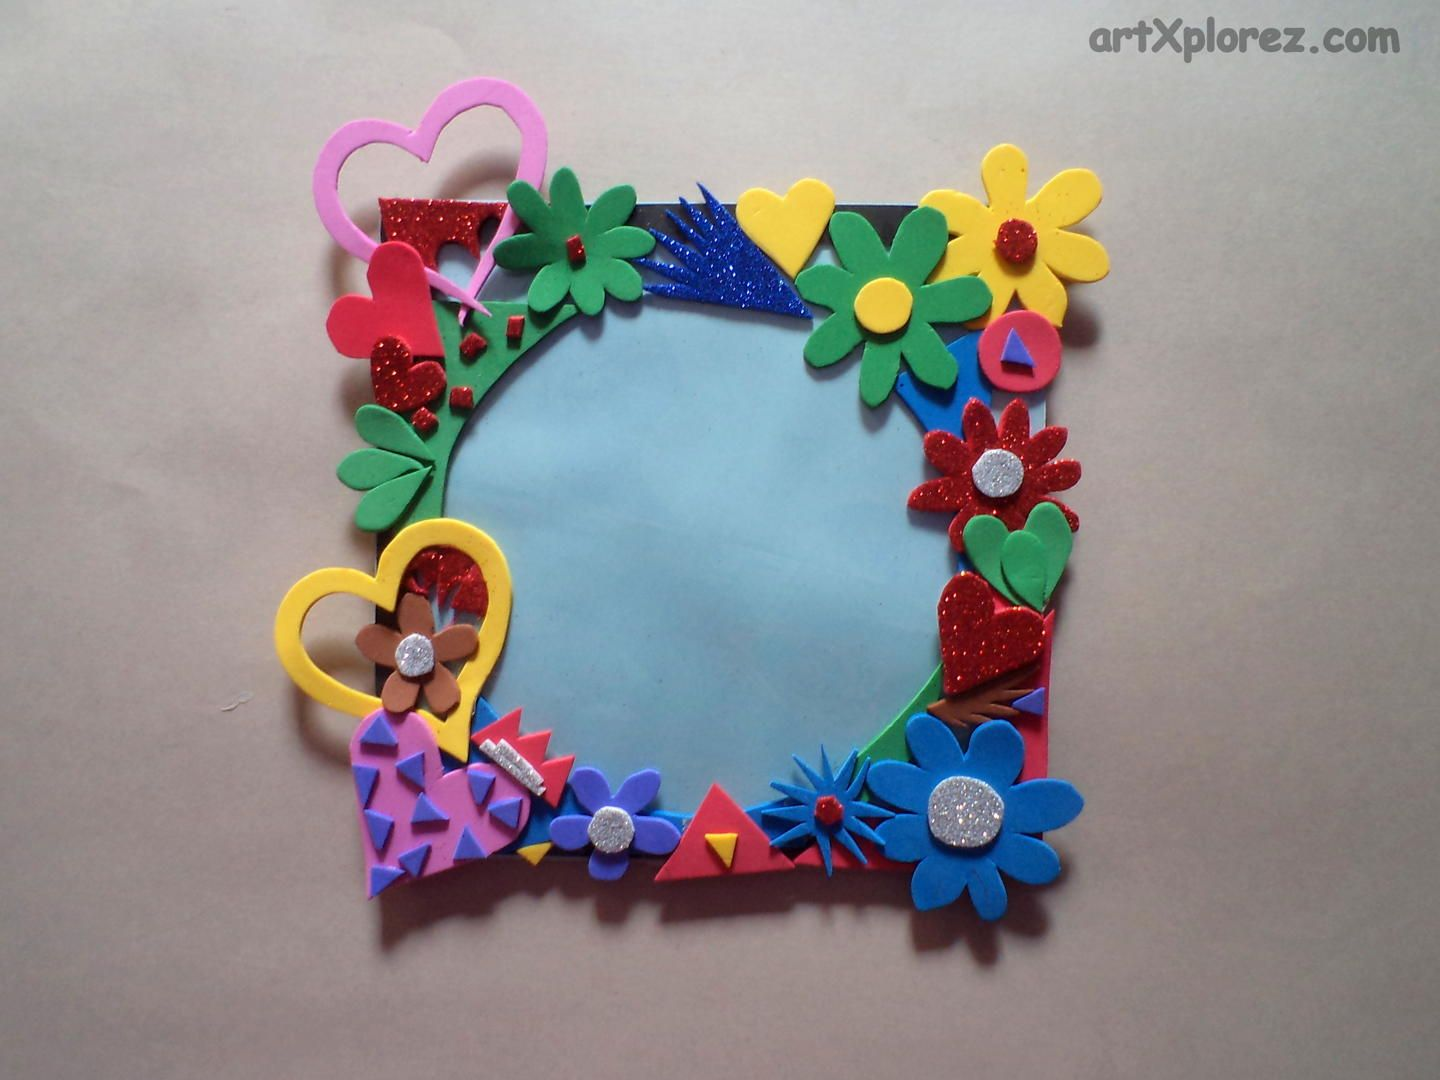 Handmade crafts using waste materials google search for Waste material craft works